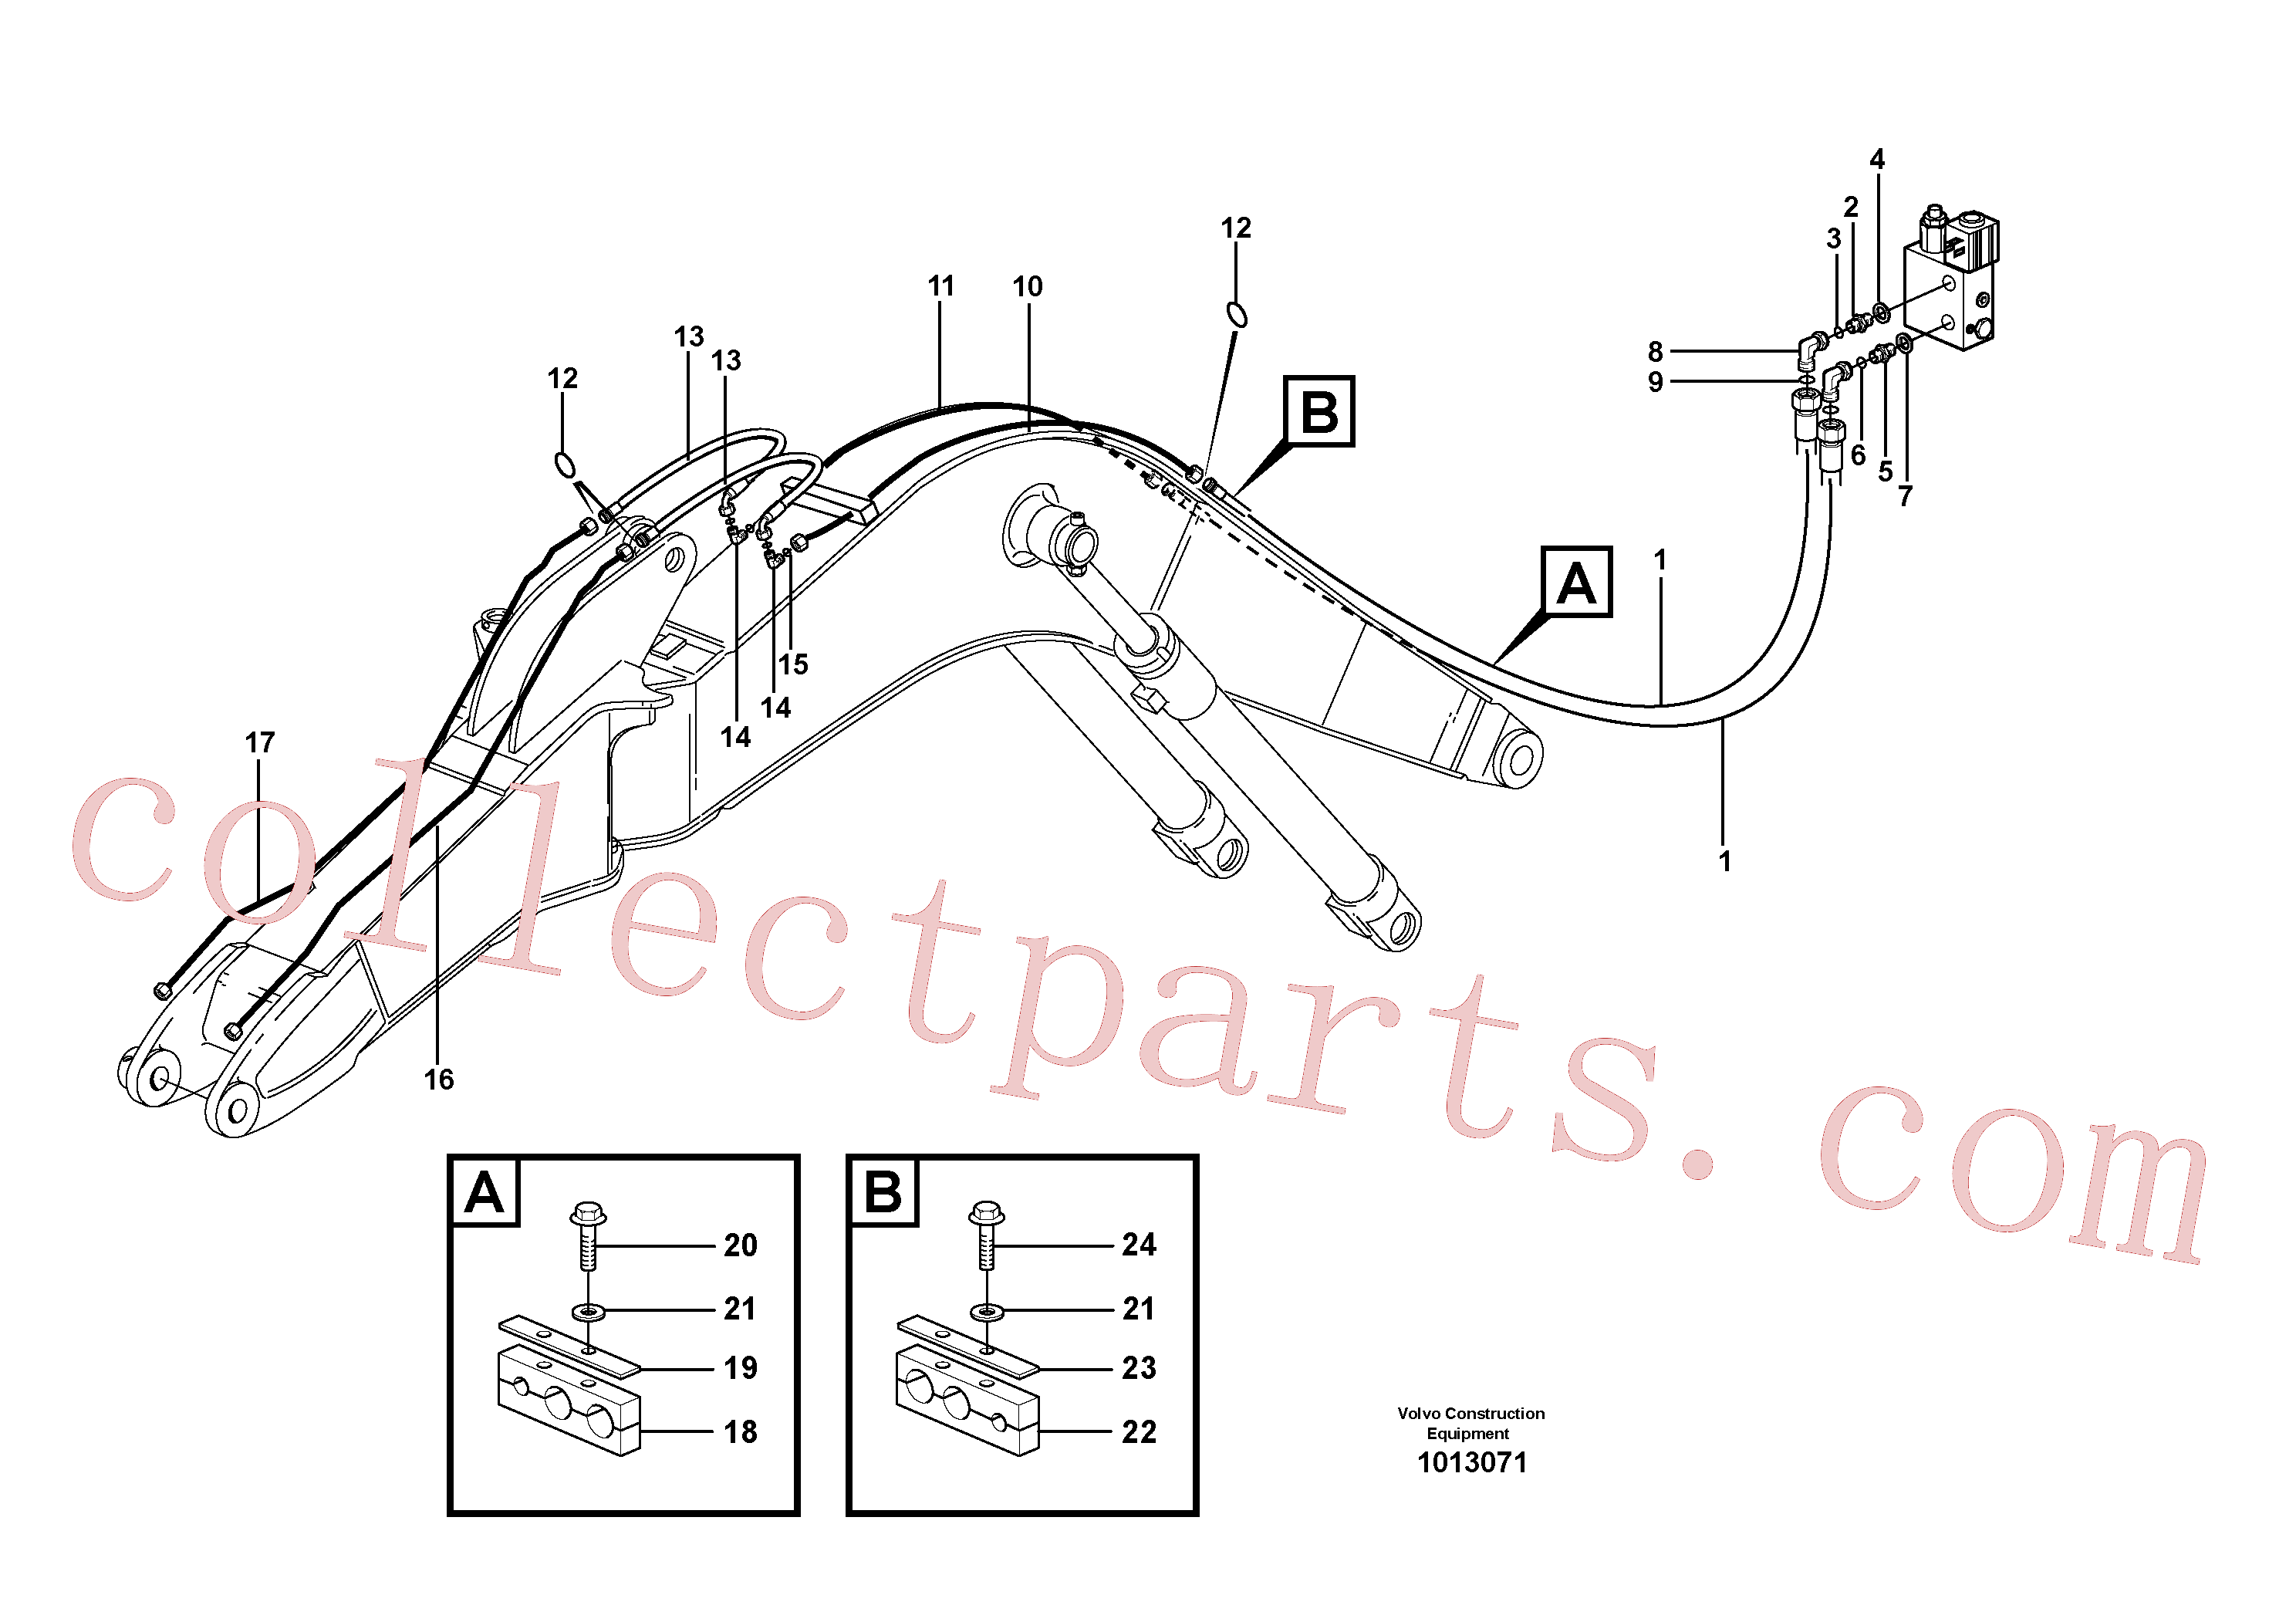 VOE14372153 for Volvo Equipment hydraulics, offset(1013071 assembly)